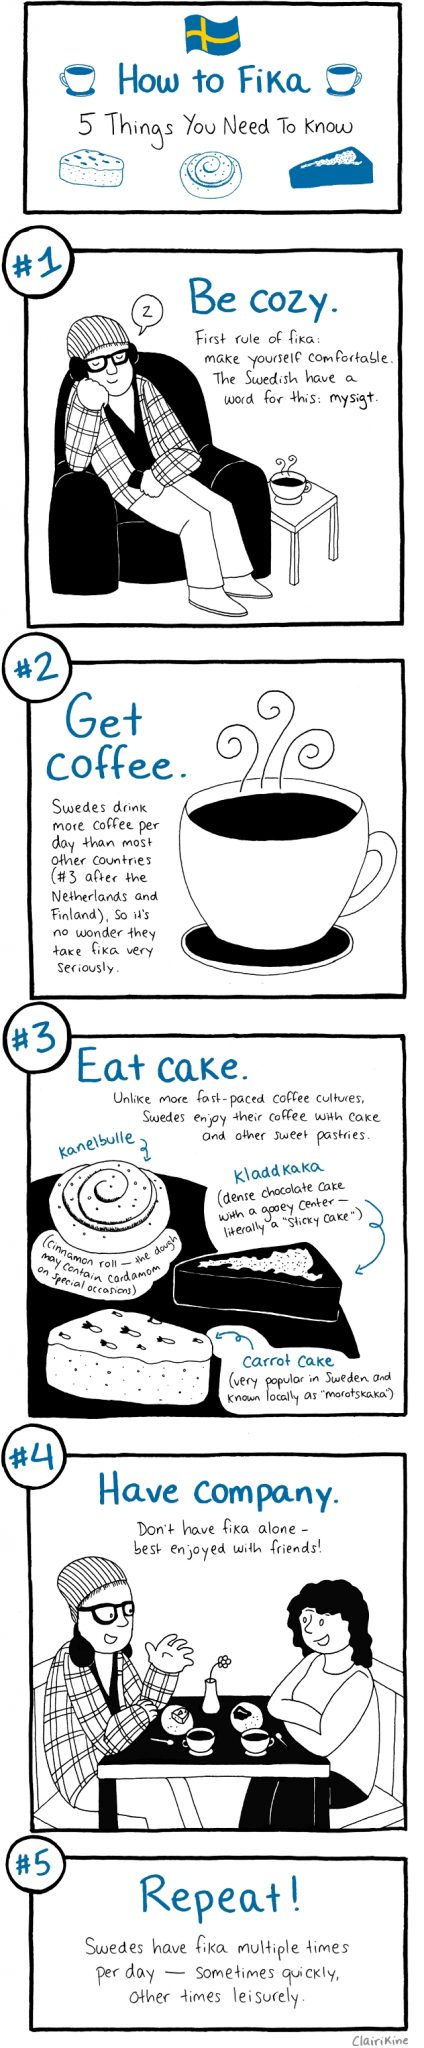 How to Fika in Sweden